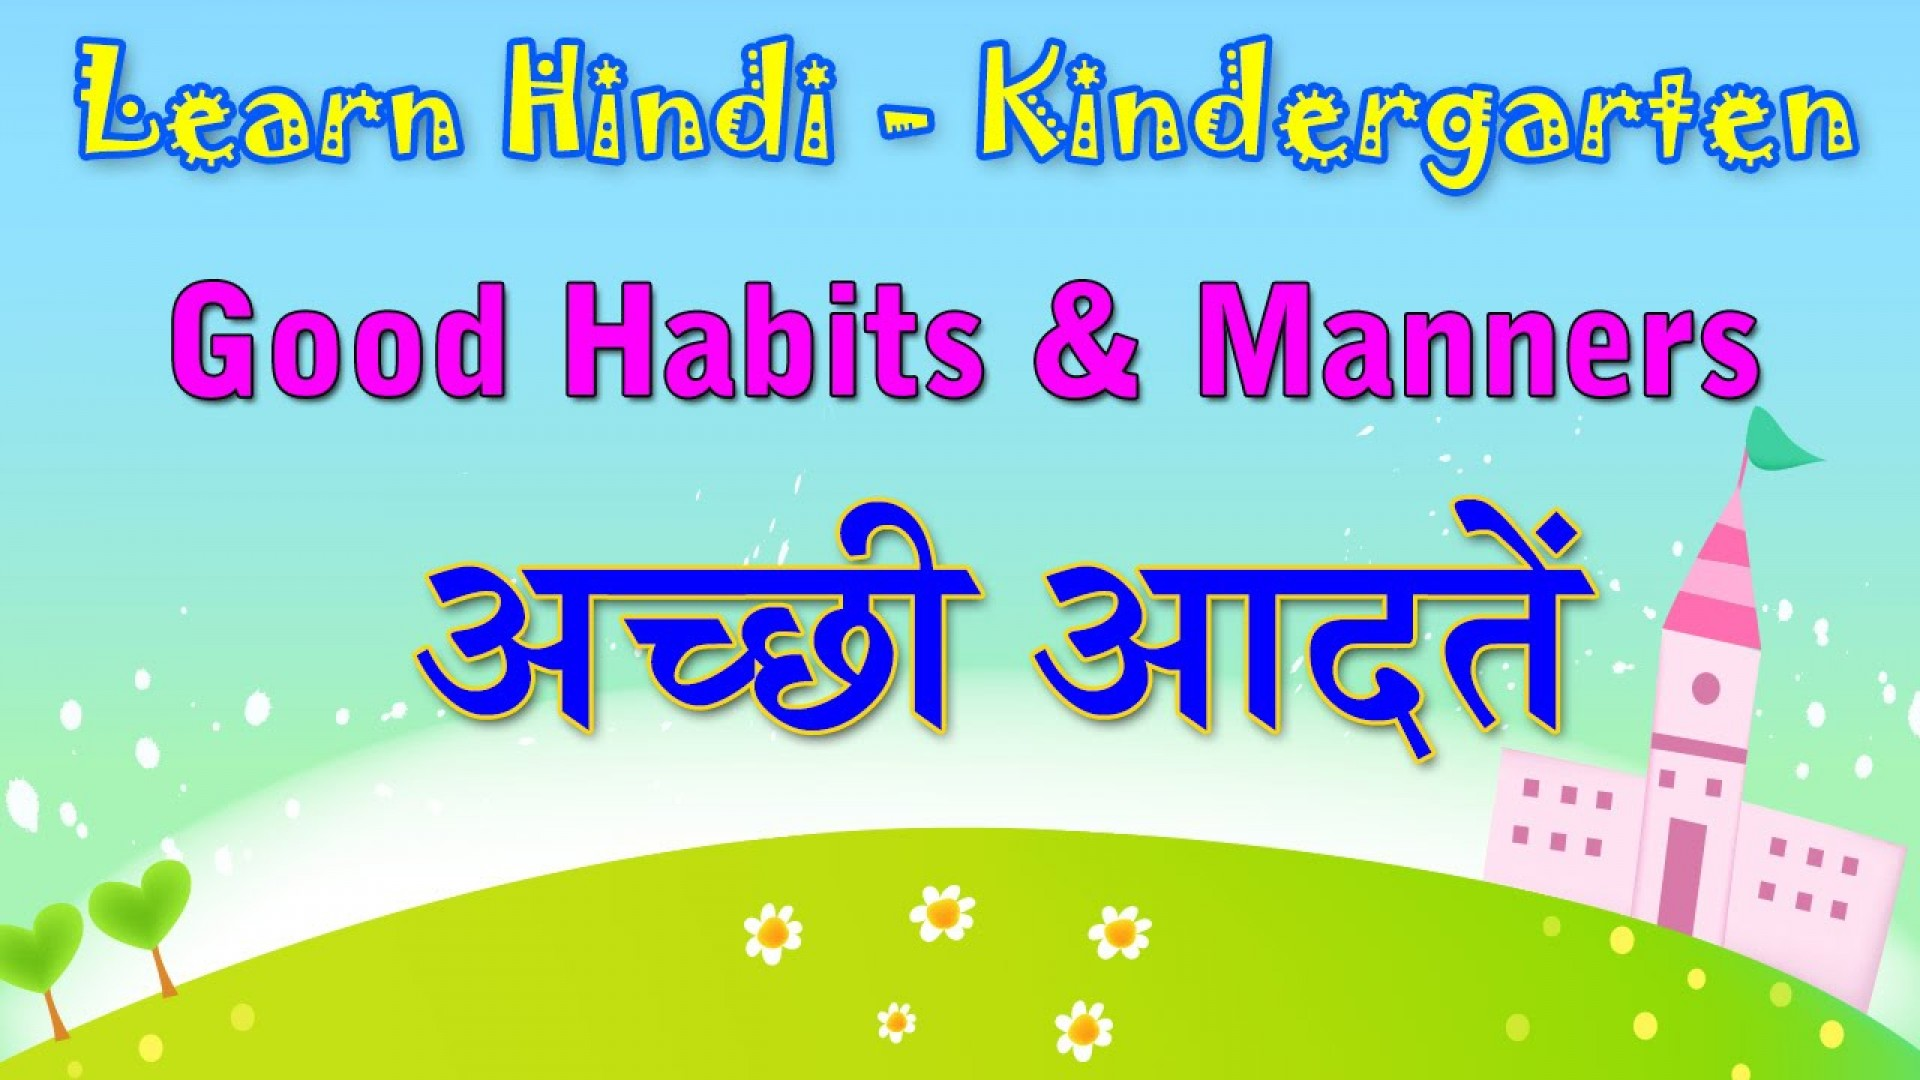 004 Essay Example Good Habits In Hindi Exceptional Healthy Eating Reading Is A Habit 1920